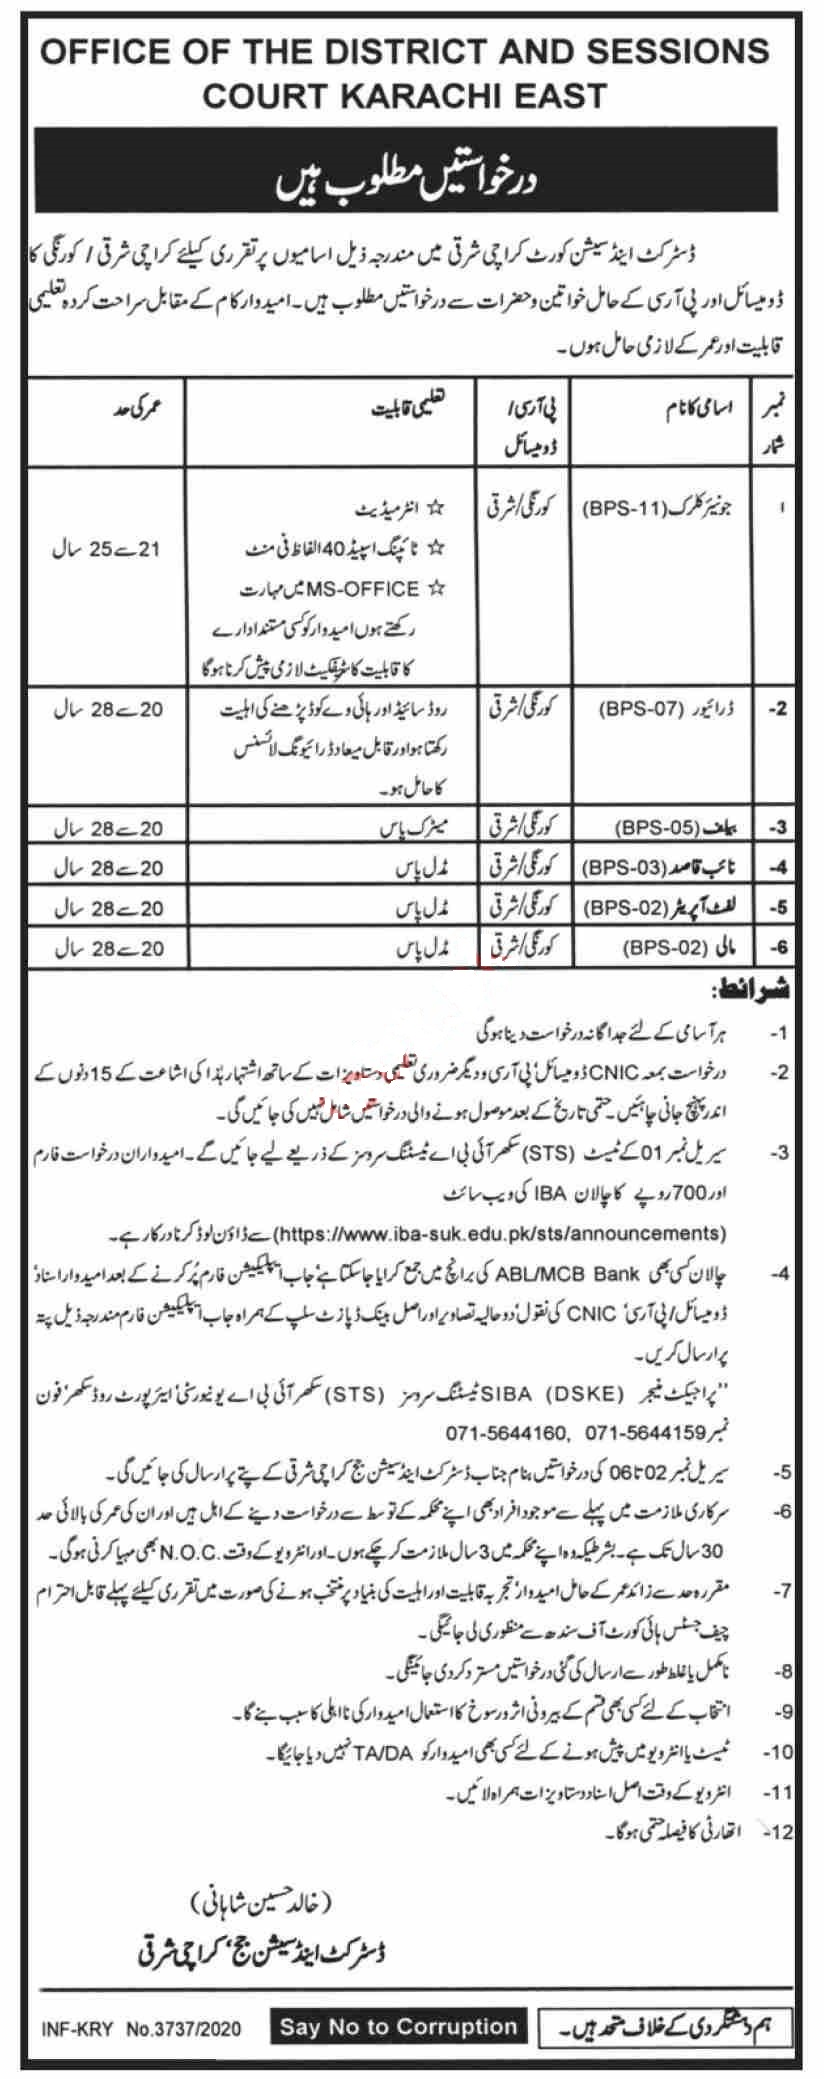 District & Session Court Karachi Jobs 2021 for Clerk, Junior Clerk, Driver, LTV Driver, HTV Driver, Bailiff, Naib Qasid, Lift Operator and Mali via STS